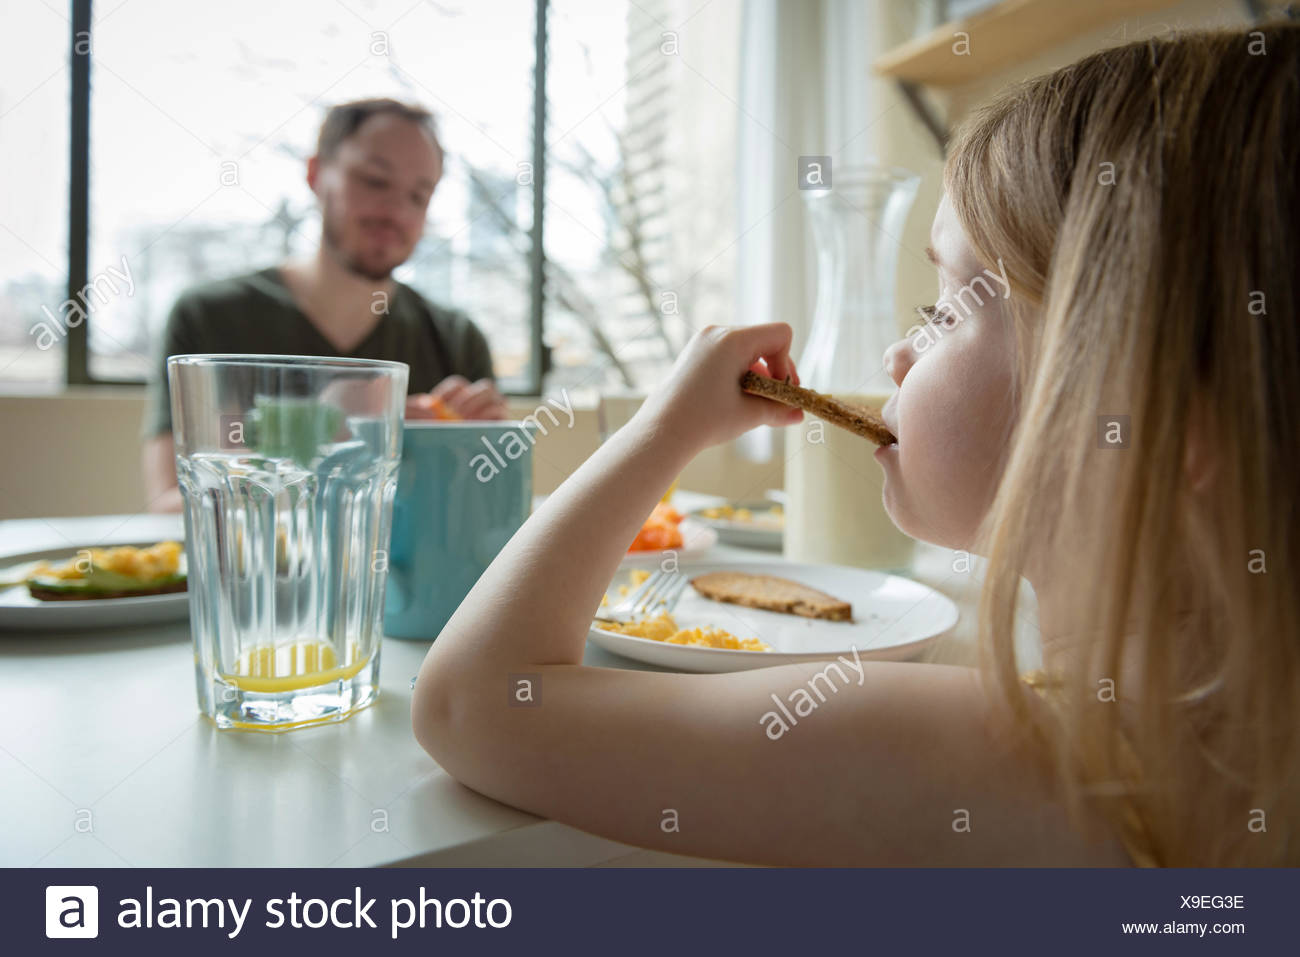 Father and daughter having breakfast - Stock Image